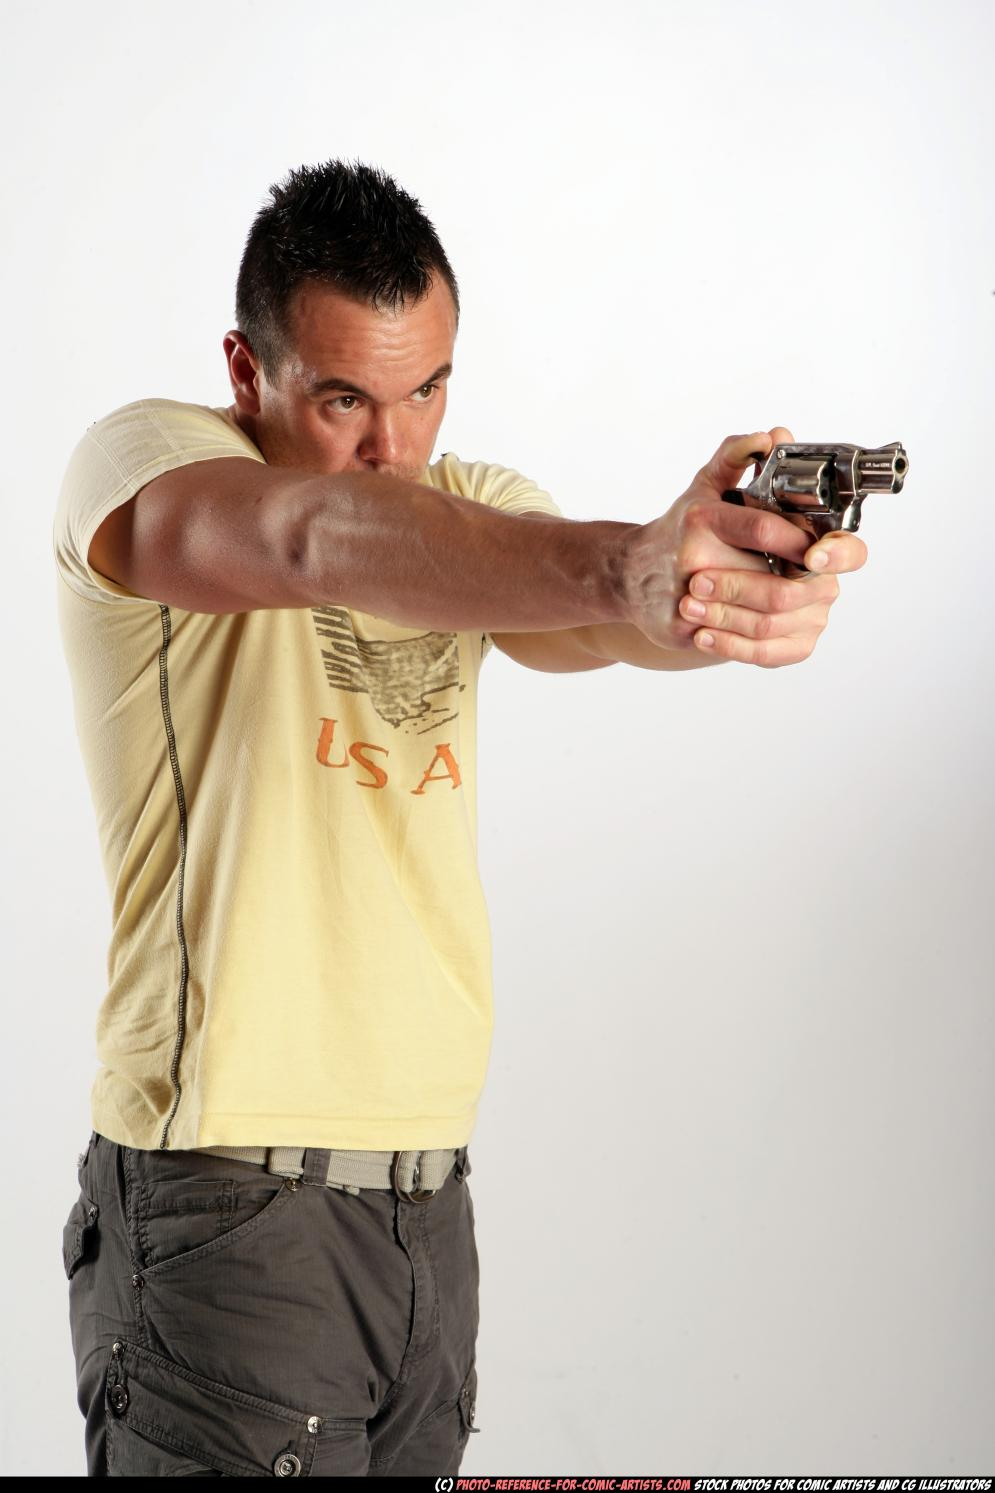 Image from Johnny Shooting Revolver - 9040-2009_12_johnny_aiming_revolver_01.jpg